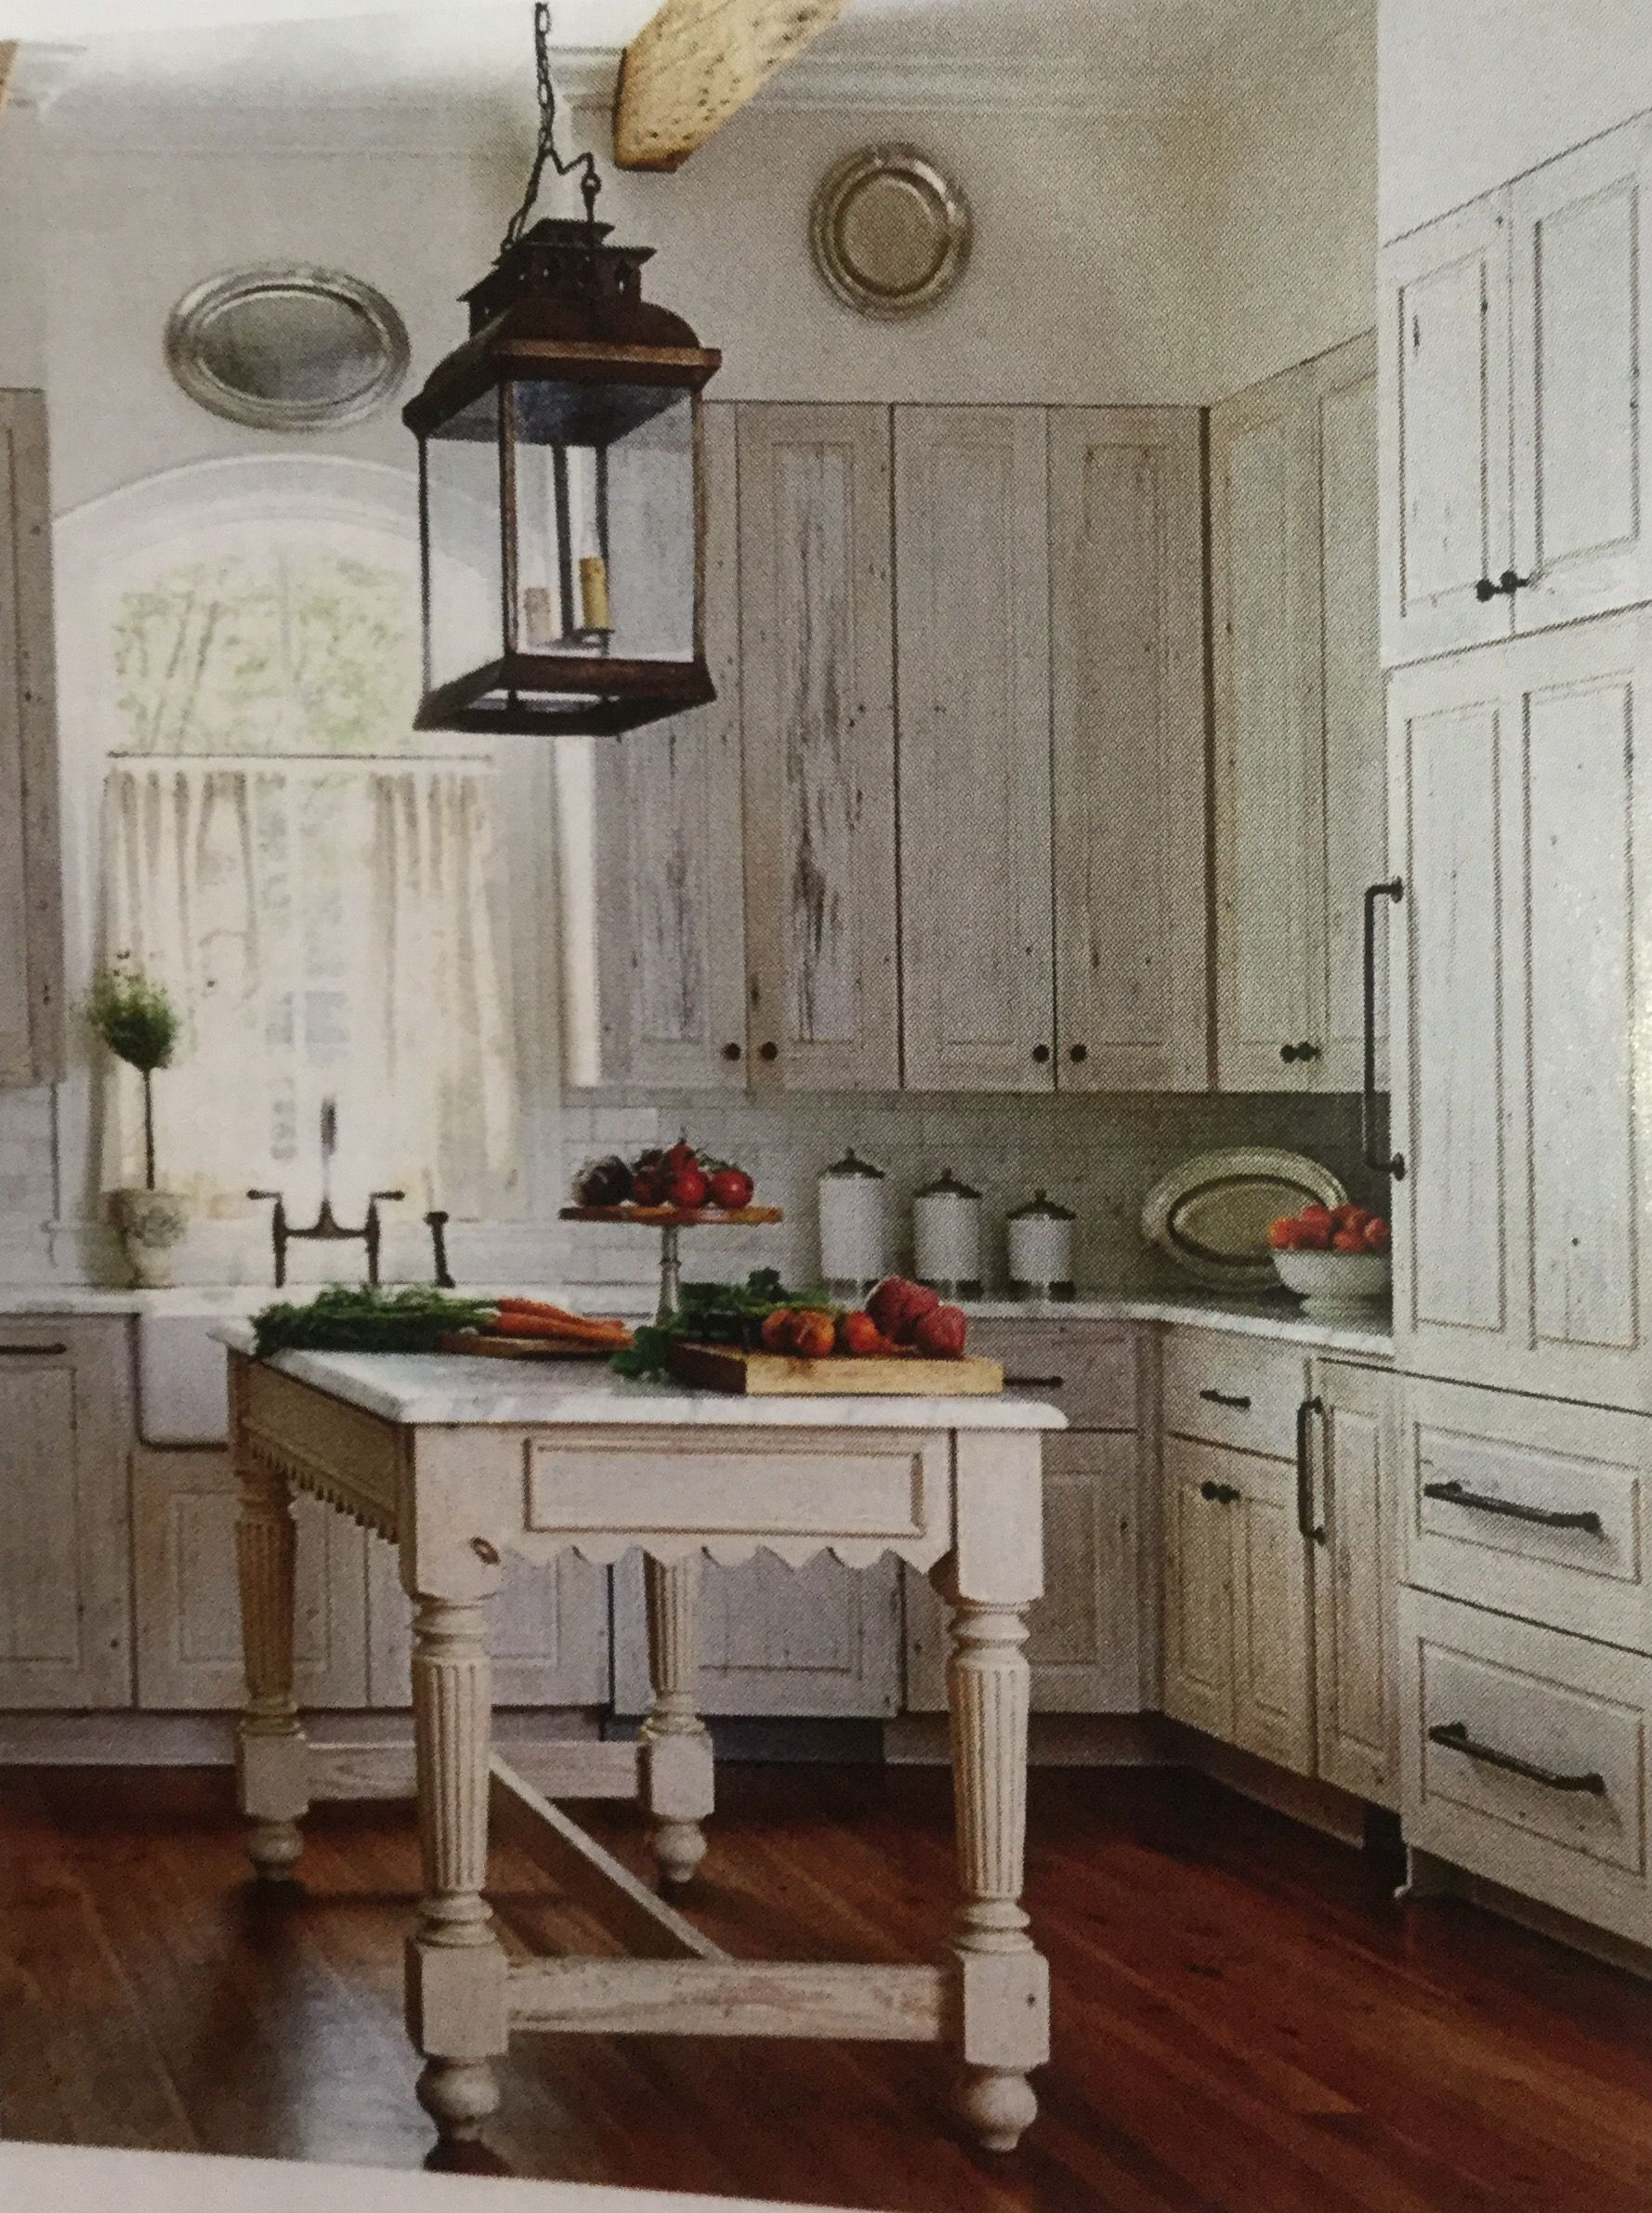 Reclaimed Whitewashed Cypress Cabinets Kitchen Cabinets Decor Home Decor Kitchen Country Kitchen